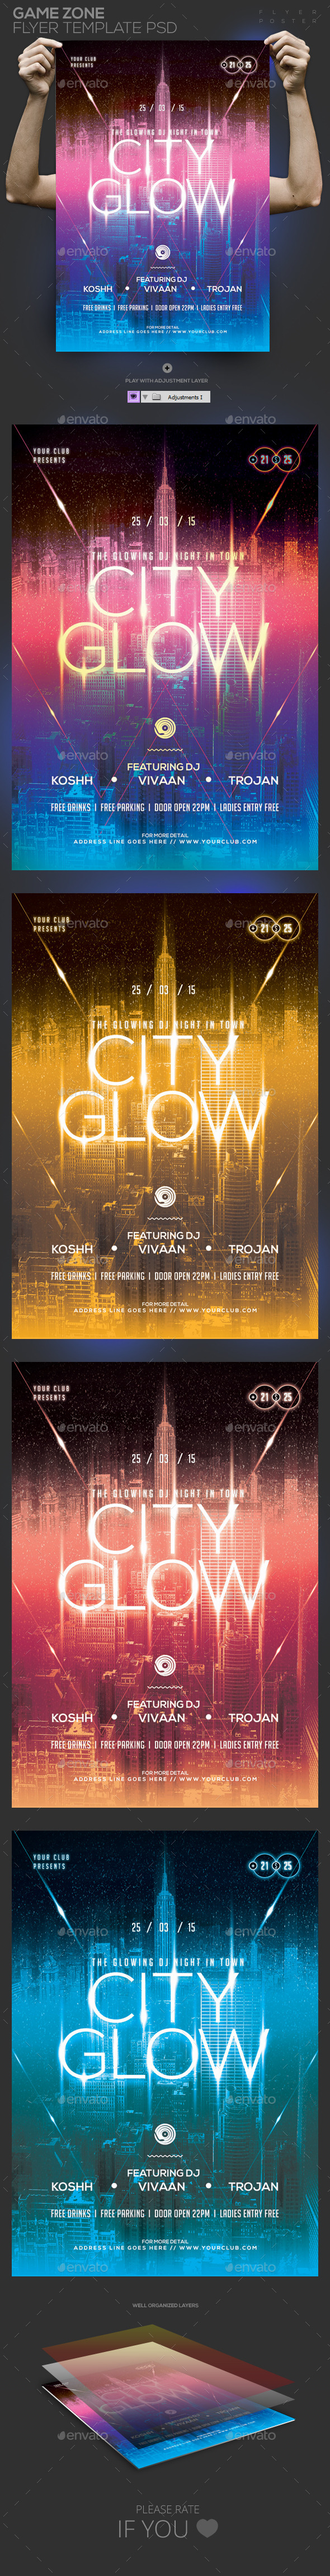 GraphicRiver Glow City Template PSD Flyer Poster 10800508